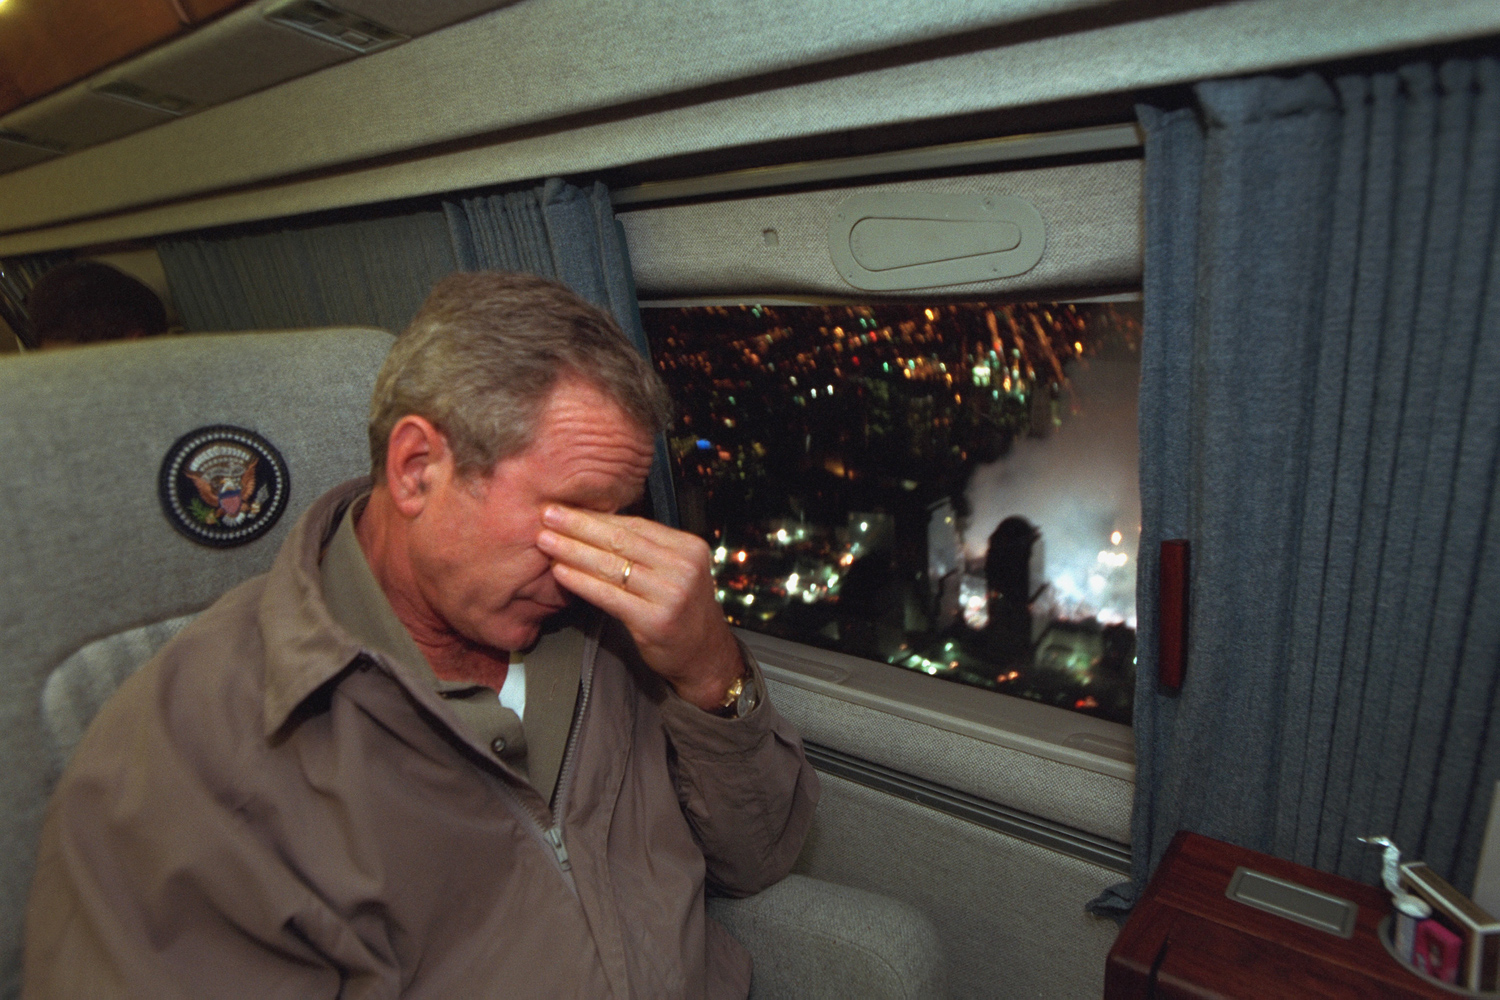 Sept. 14, 2001. With smoke still billowing from the World Trade Center disaster site, President Bush departs New York City en route to Washington.